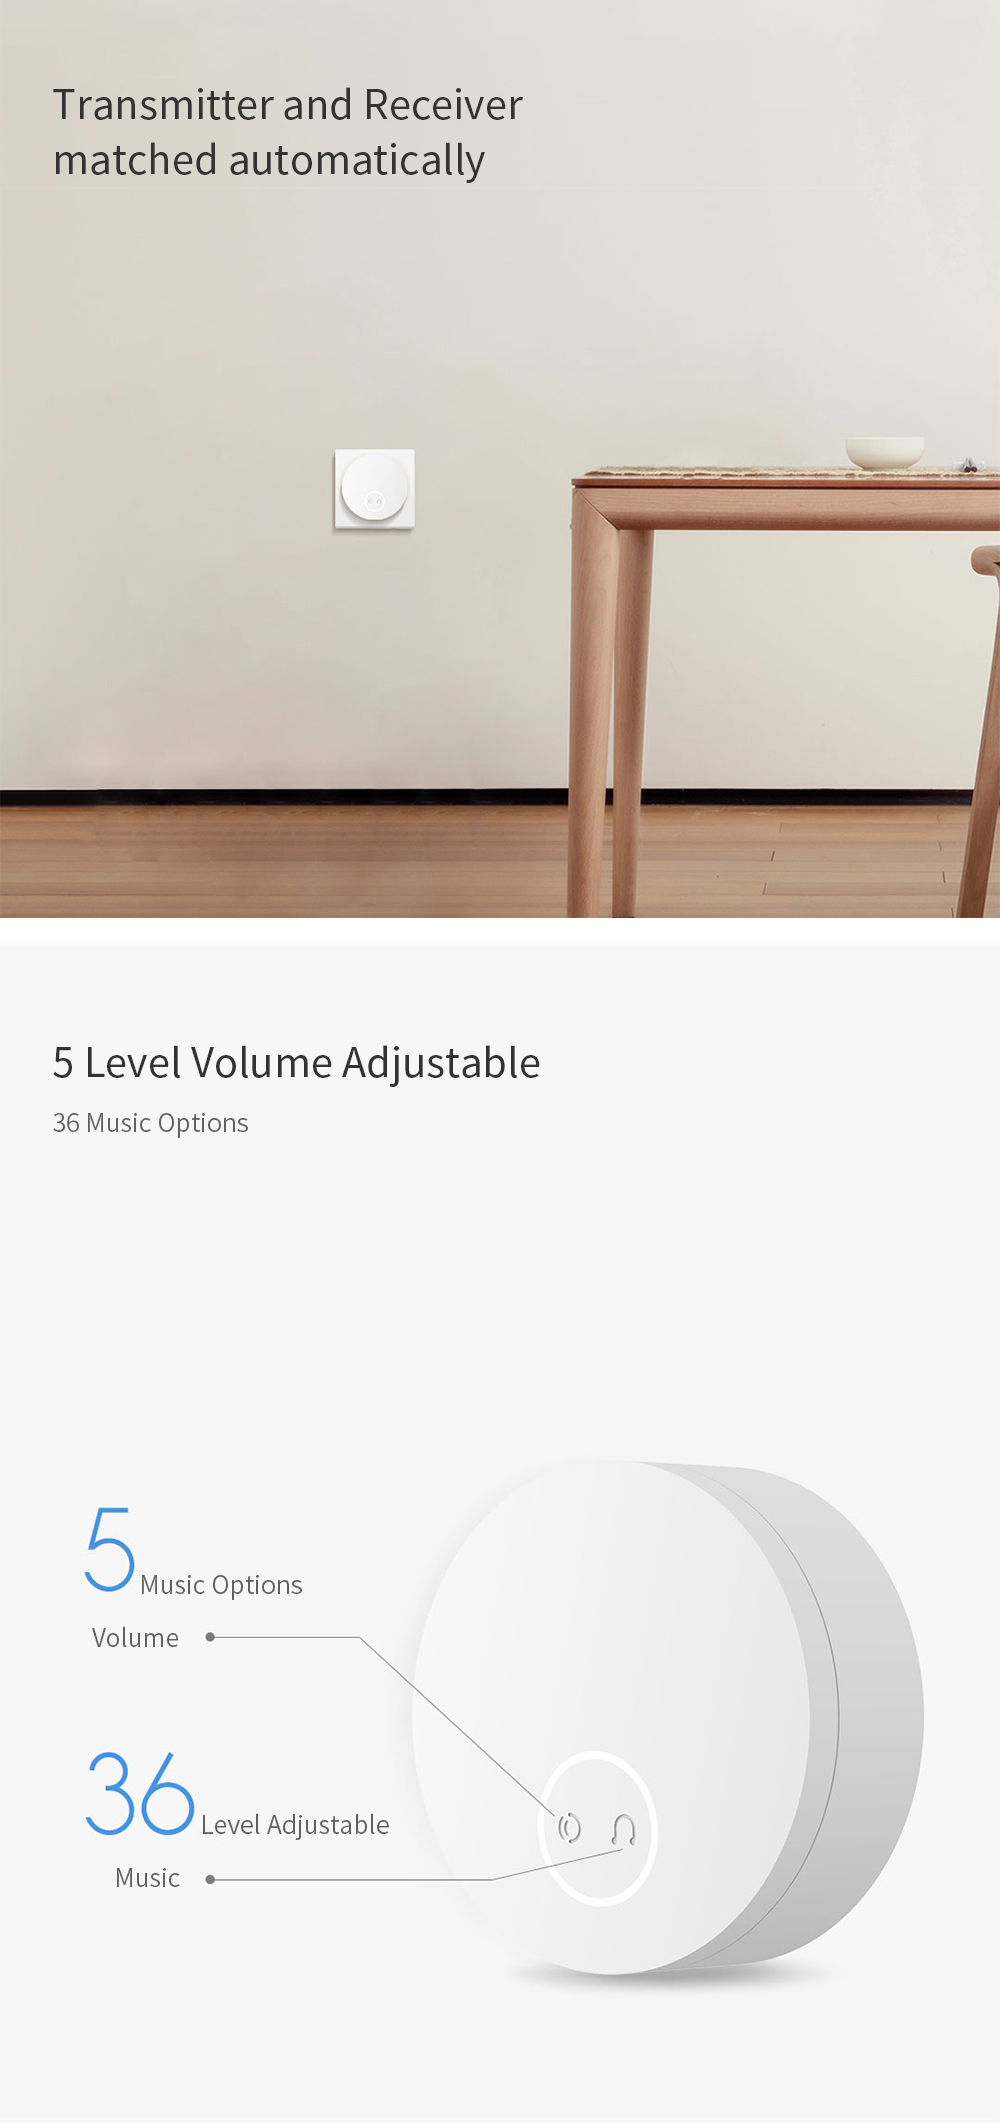 Linptech WIFI Self-power-generat0ing Wireless Doorbell Work with Mijia APP Smart Control Memory Function AC 110-240V from xiaomi youpin